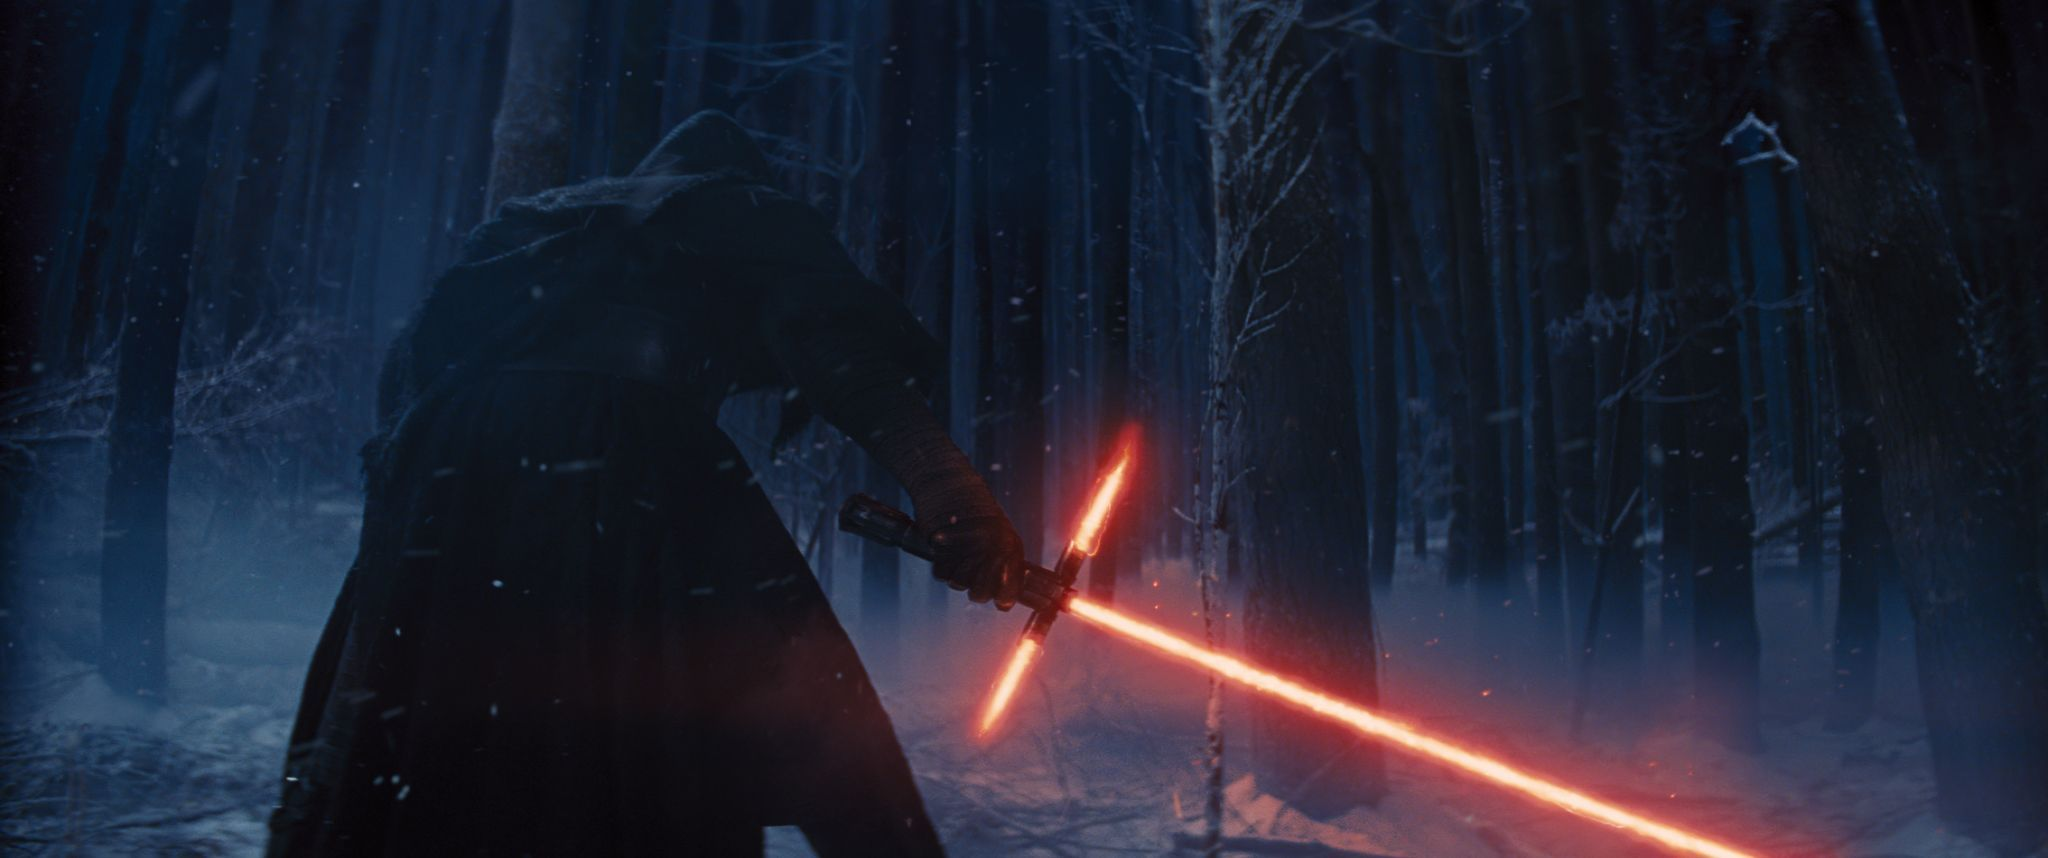 Star Wars VII The Force Awakens Síla se probouzí